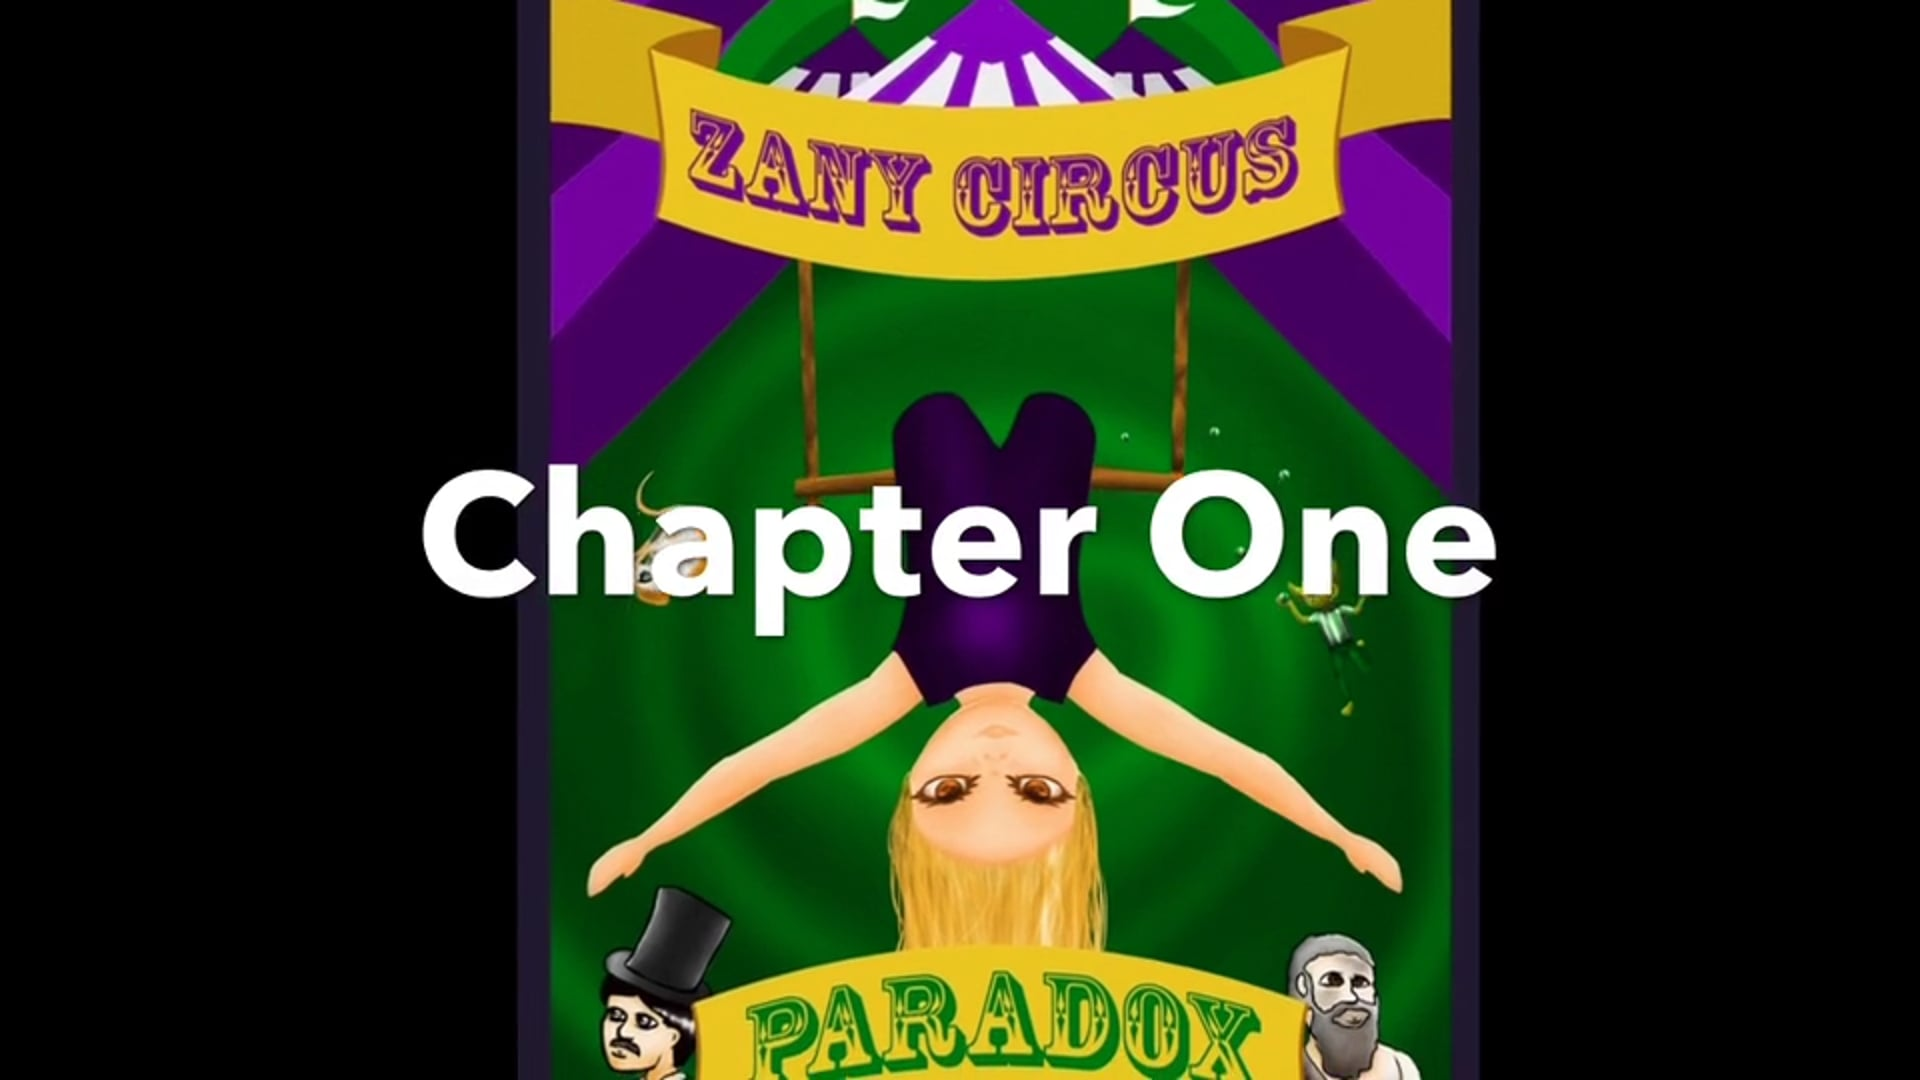 Read Aloud - 'Zany Circus: Paradox' by Nanci Nott and Xanthe Turner. Chapter One.